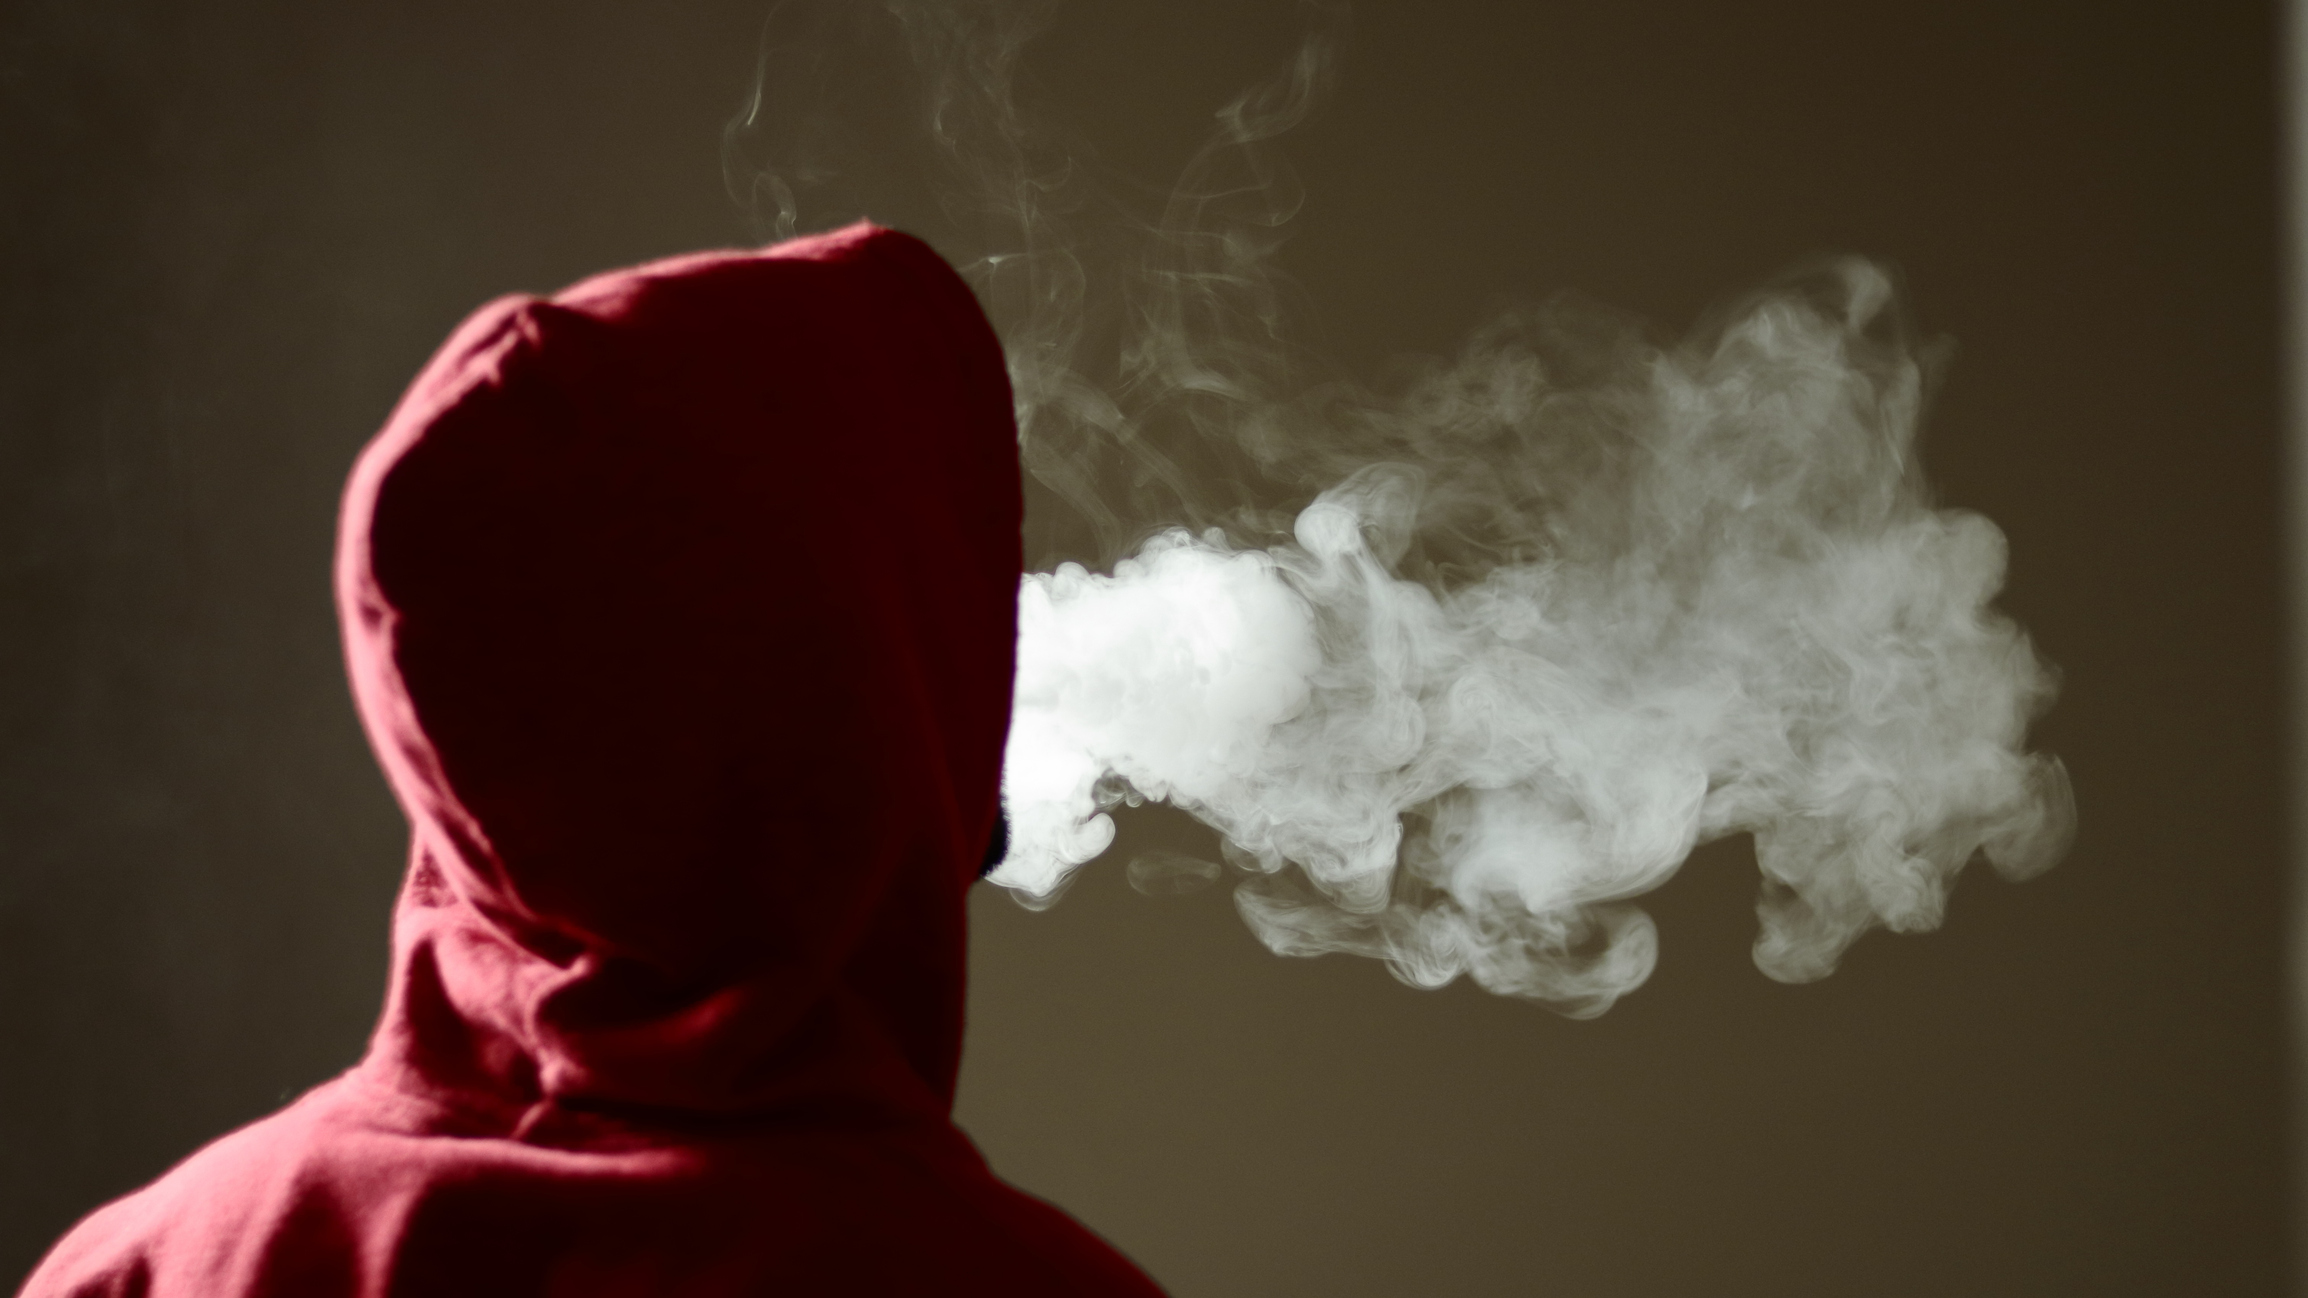 Young male in red hoodie vaping smoking, exhales thick vapor, isolated rear view. Image credit: property of Naveen Asaithambi